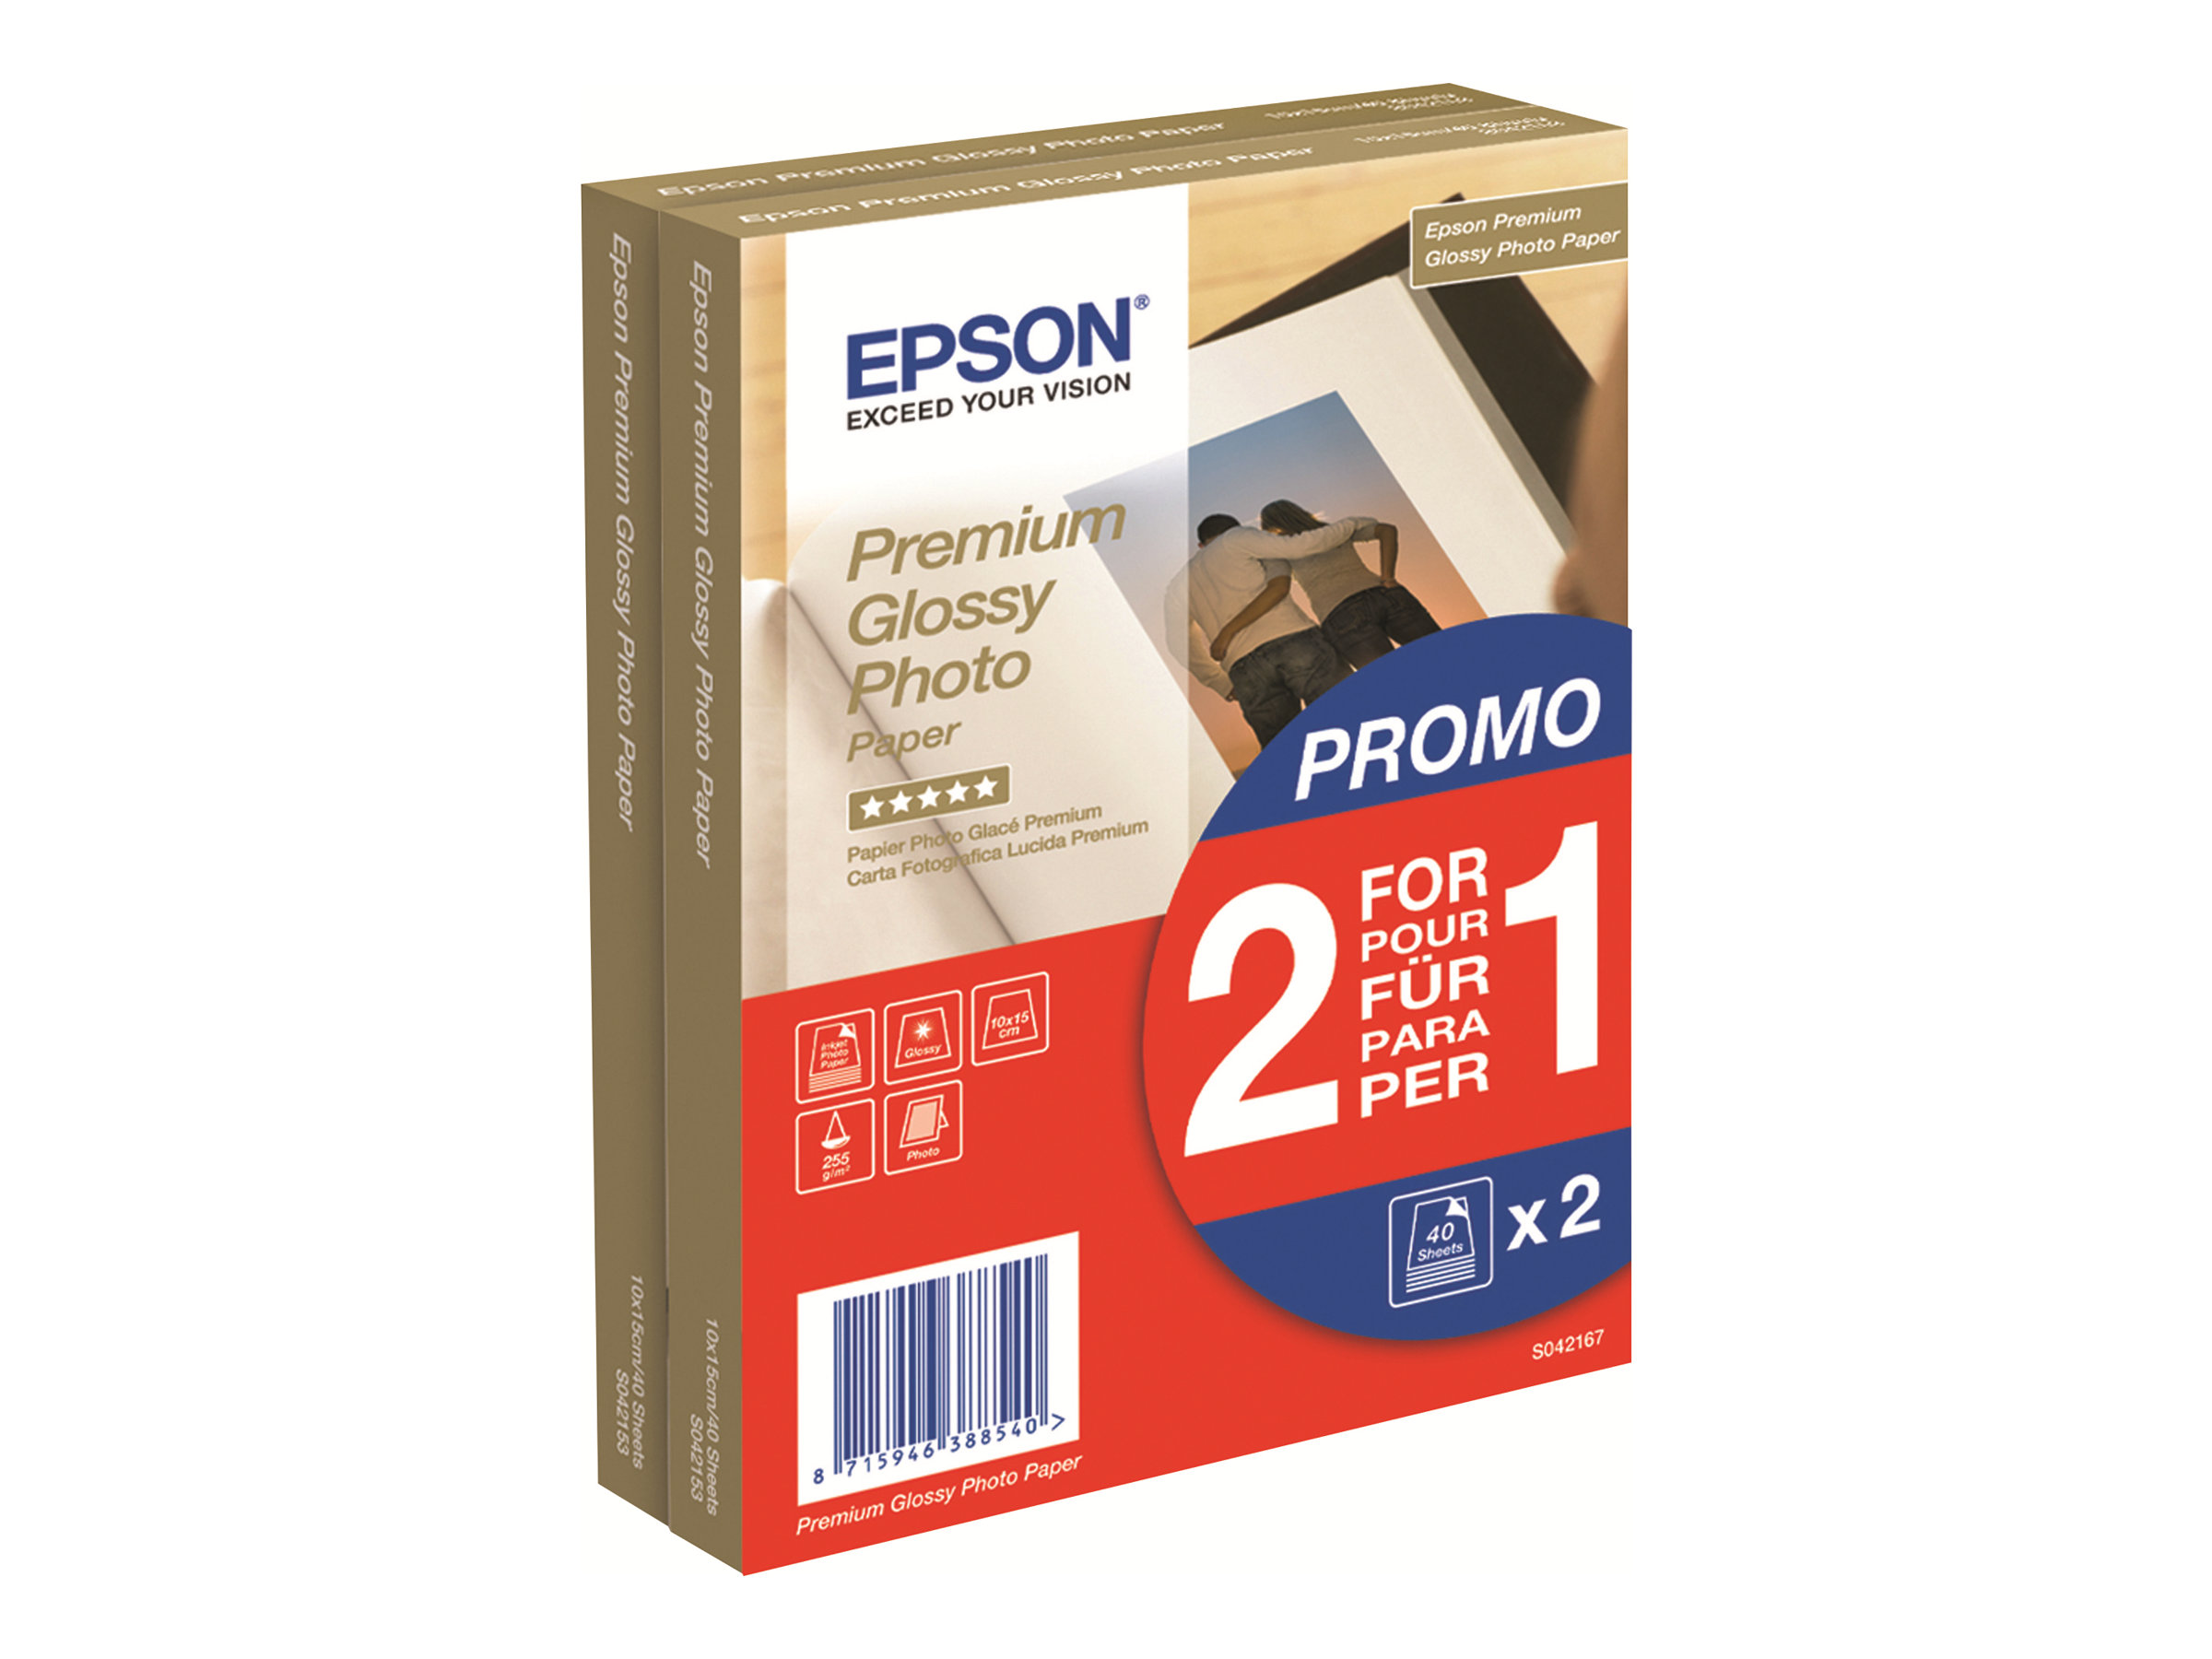 Epson Premium Glossy Photo Paper BOGOF - Brillant - 100 x 150 mm - 255 g/m² - 40 feuille(s) papier photo (pack de 2) - pour EcoTank ET-16500; Expression Home HD XP-15000; Expression Premium XP-540, 900